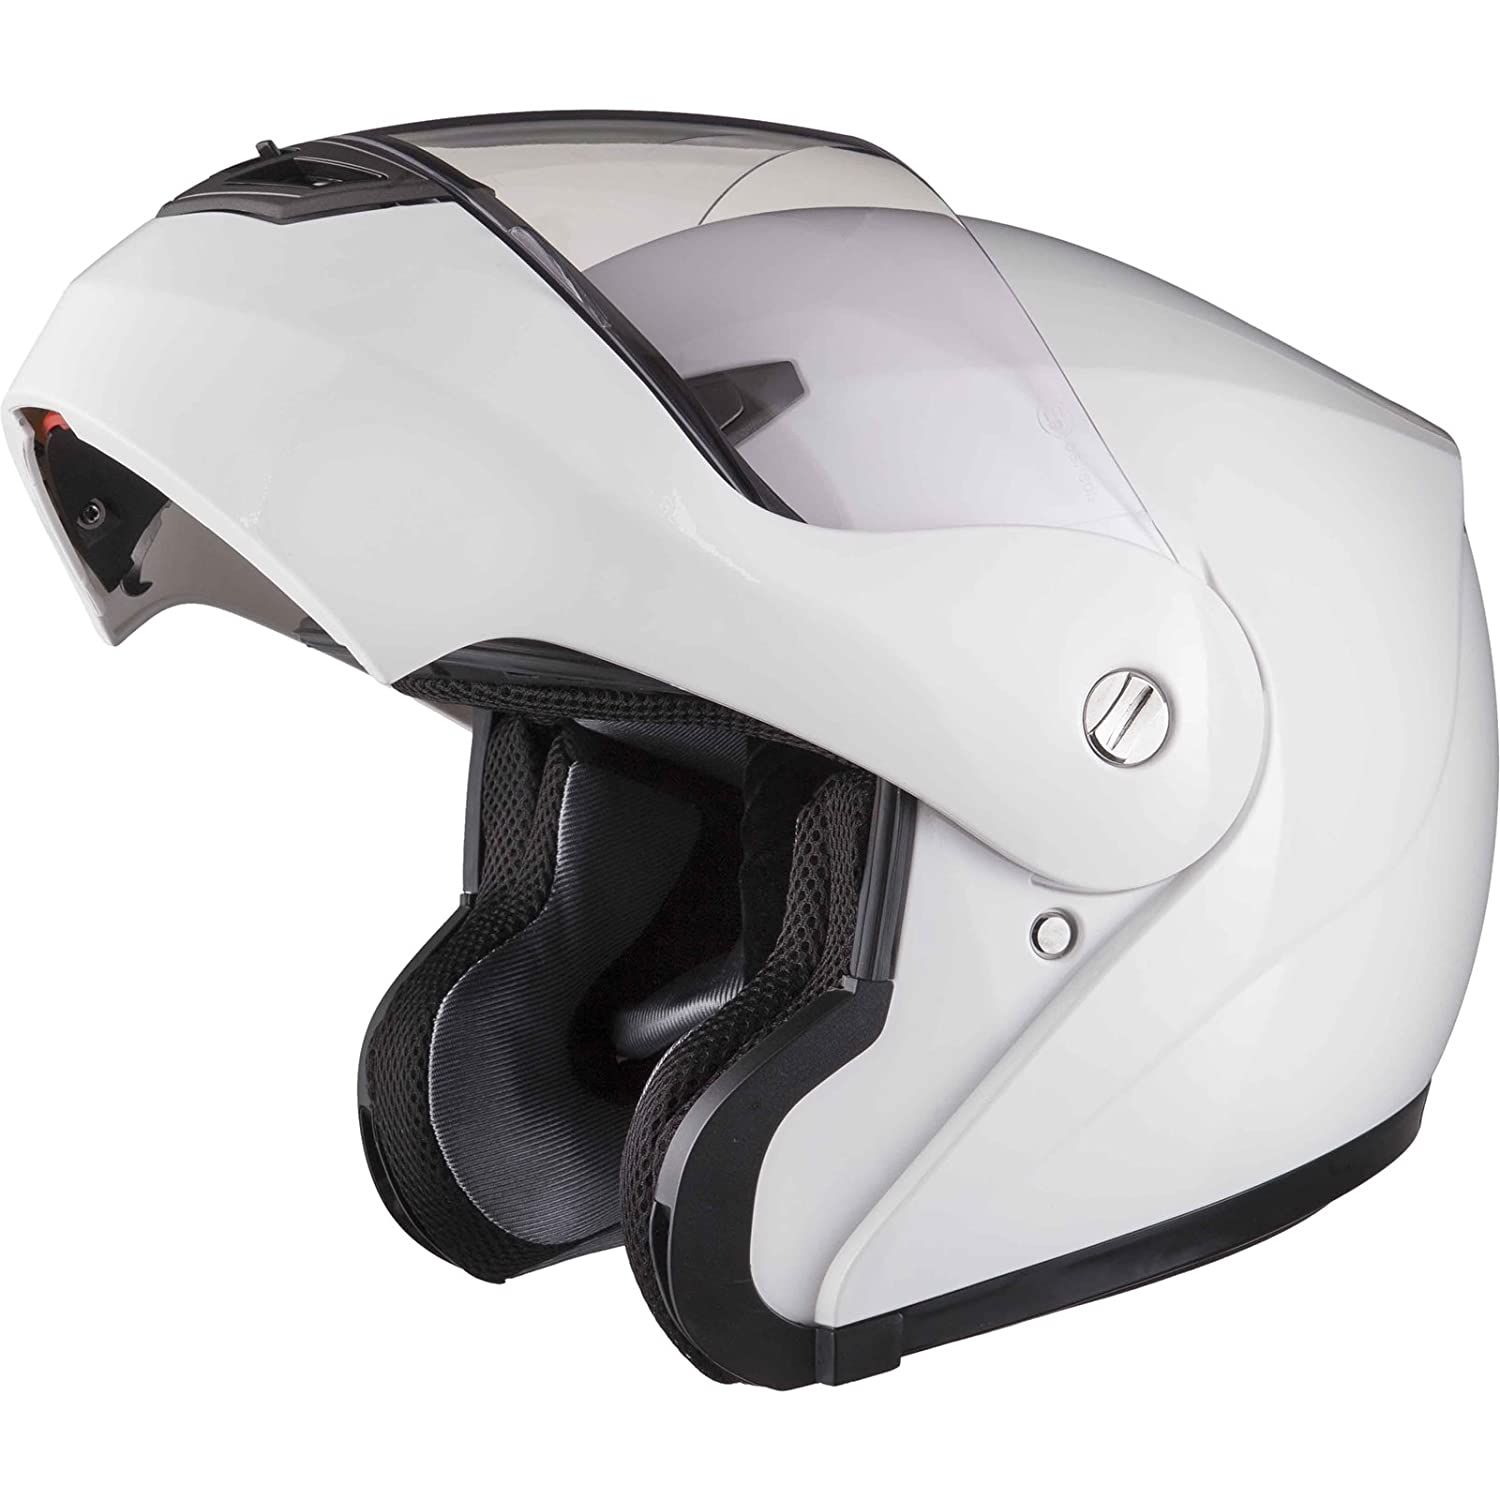 Shox Bullet Casque de Moto/Scooter Modulable